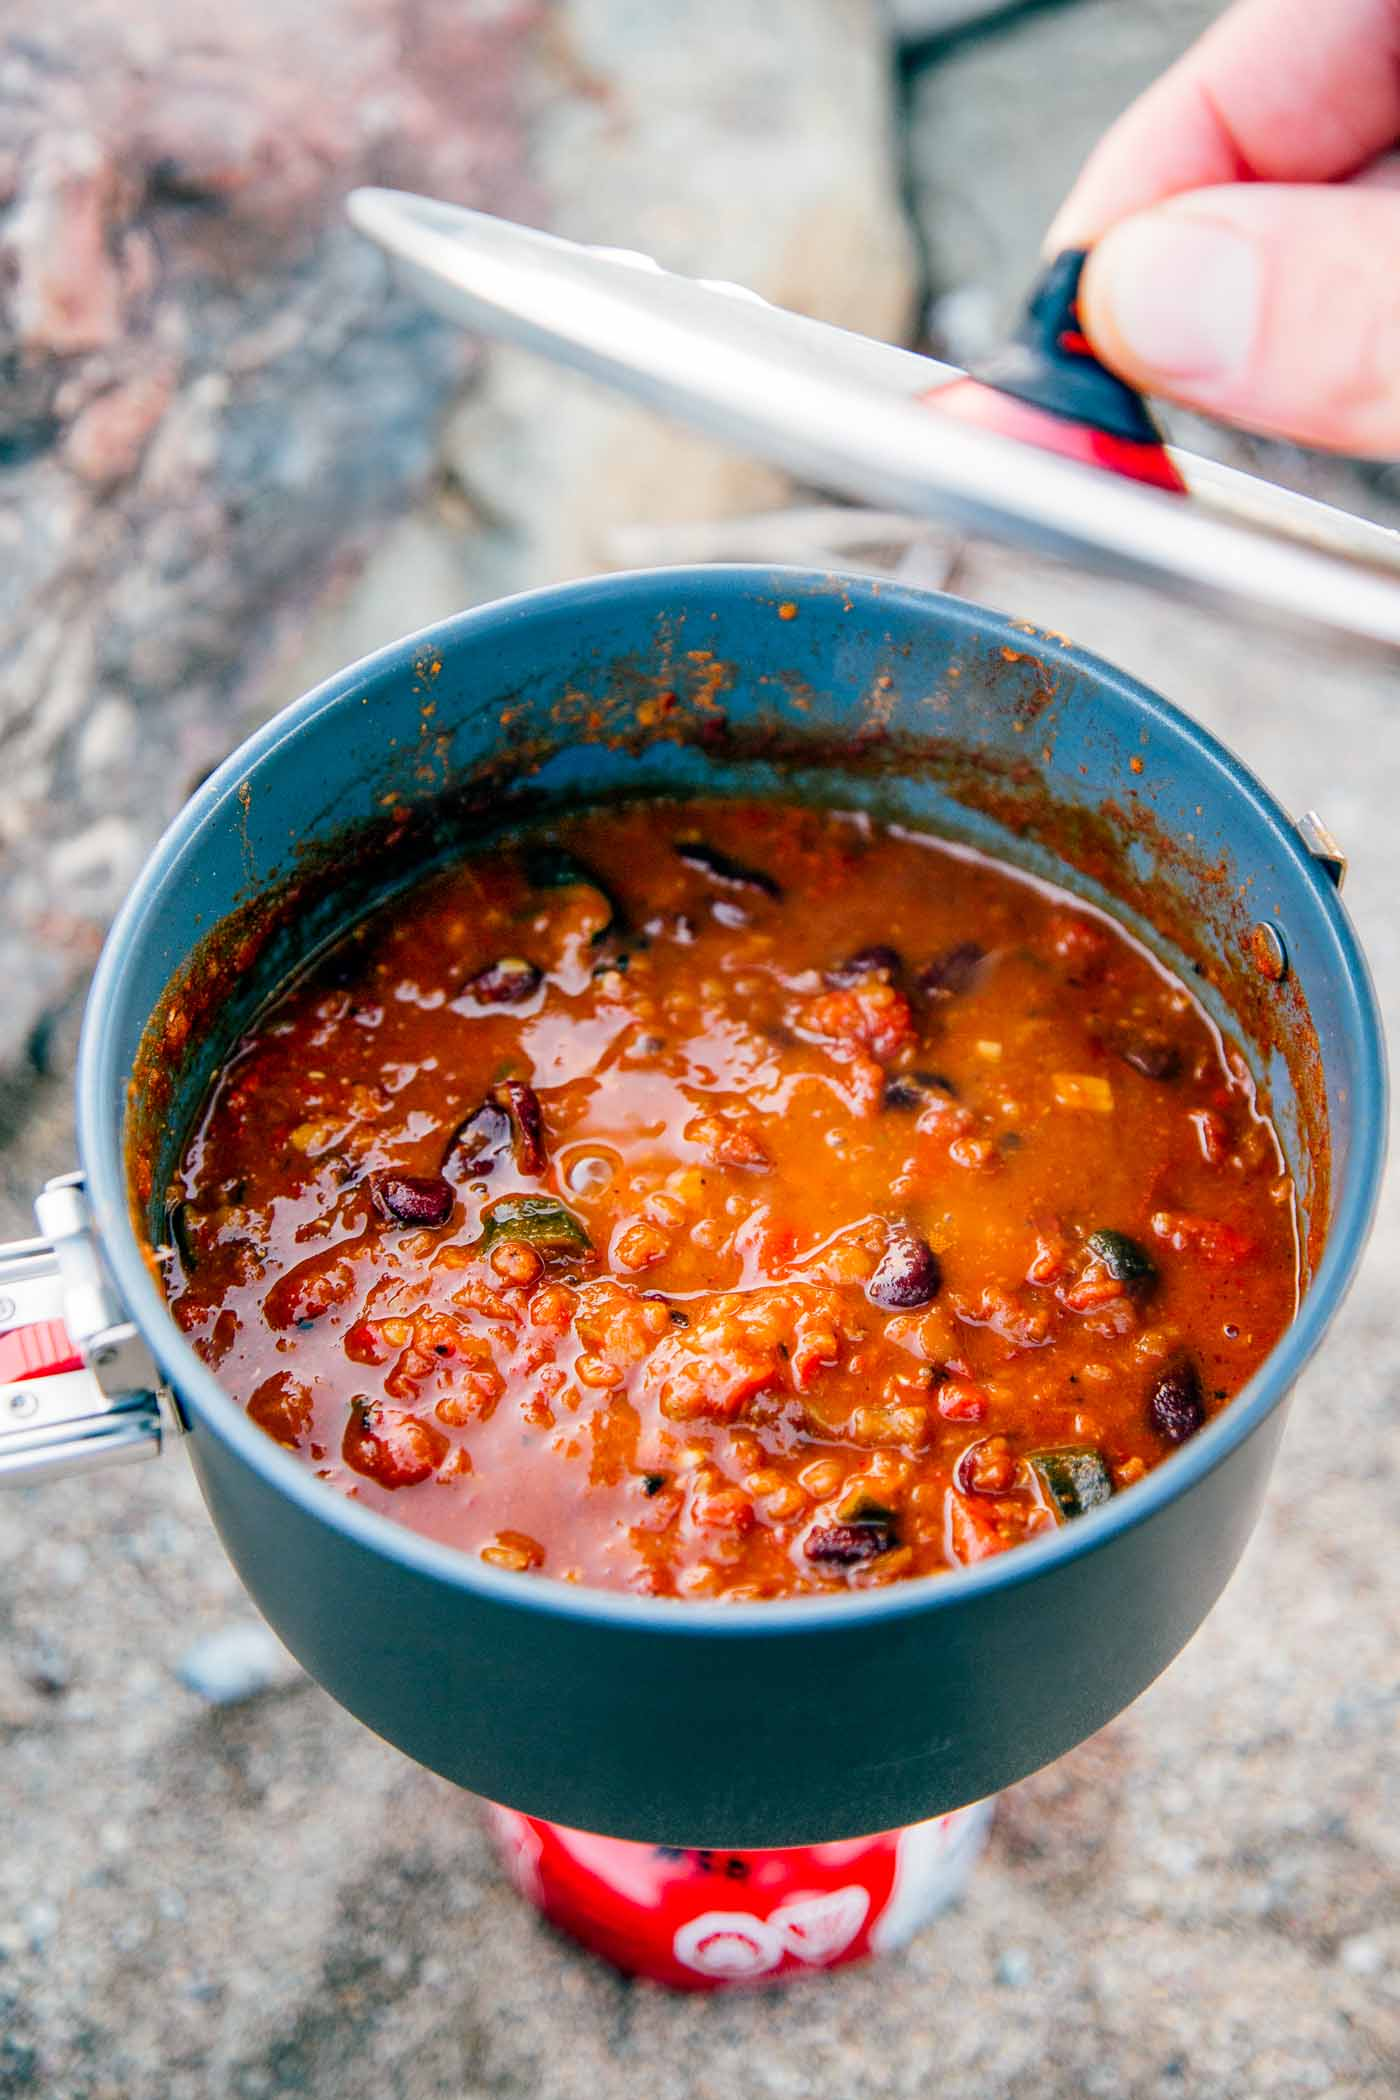 A backpacking pot full of red lentil chili.